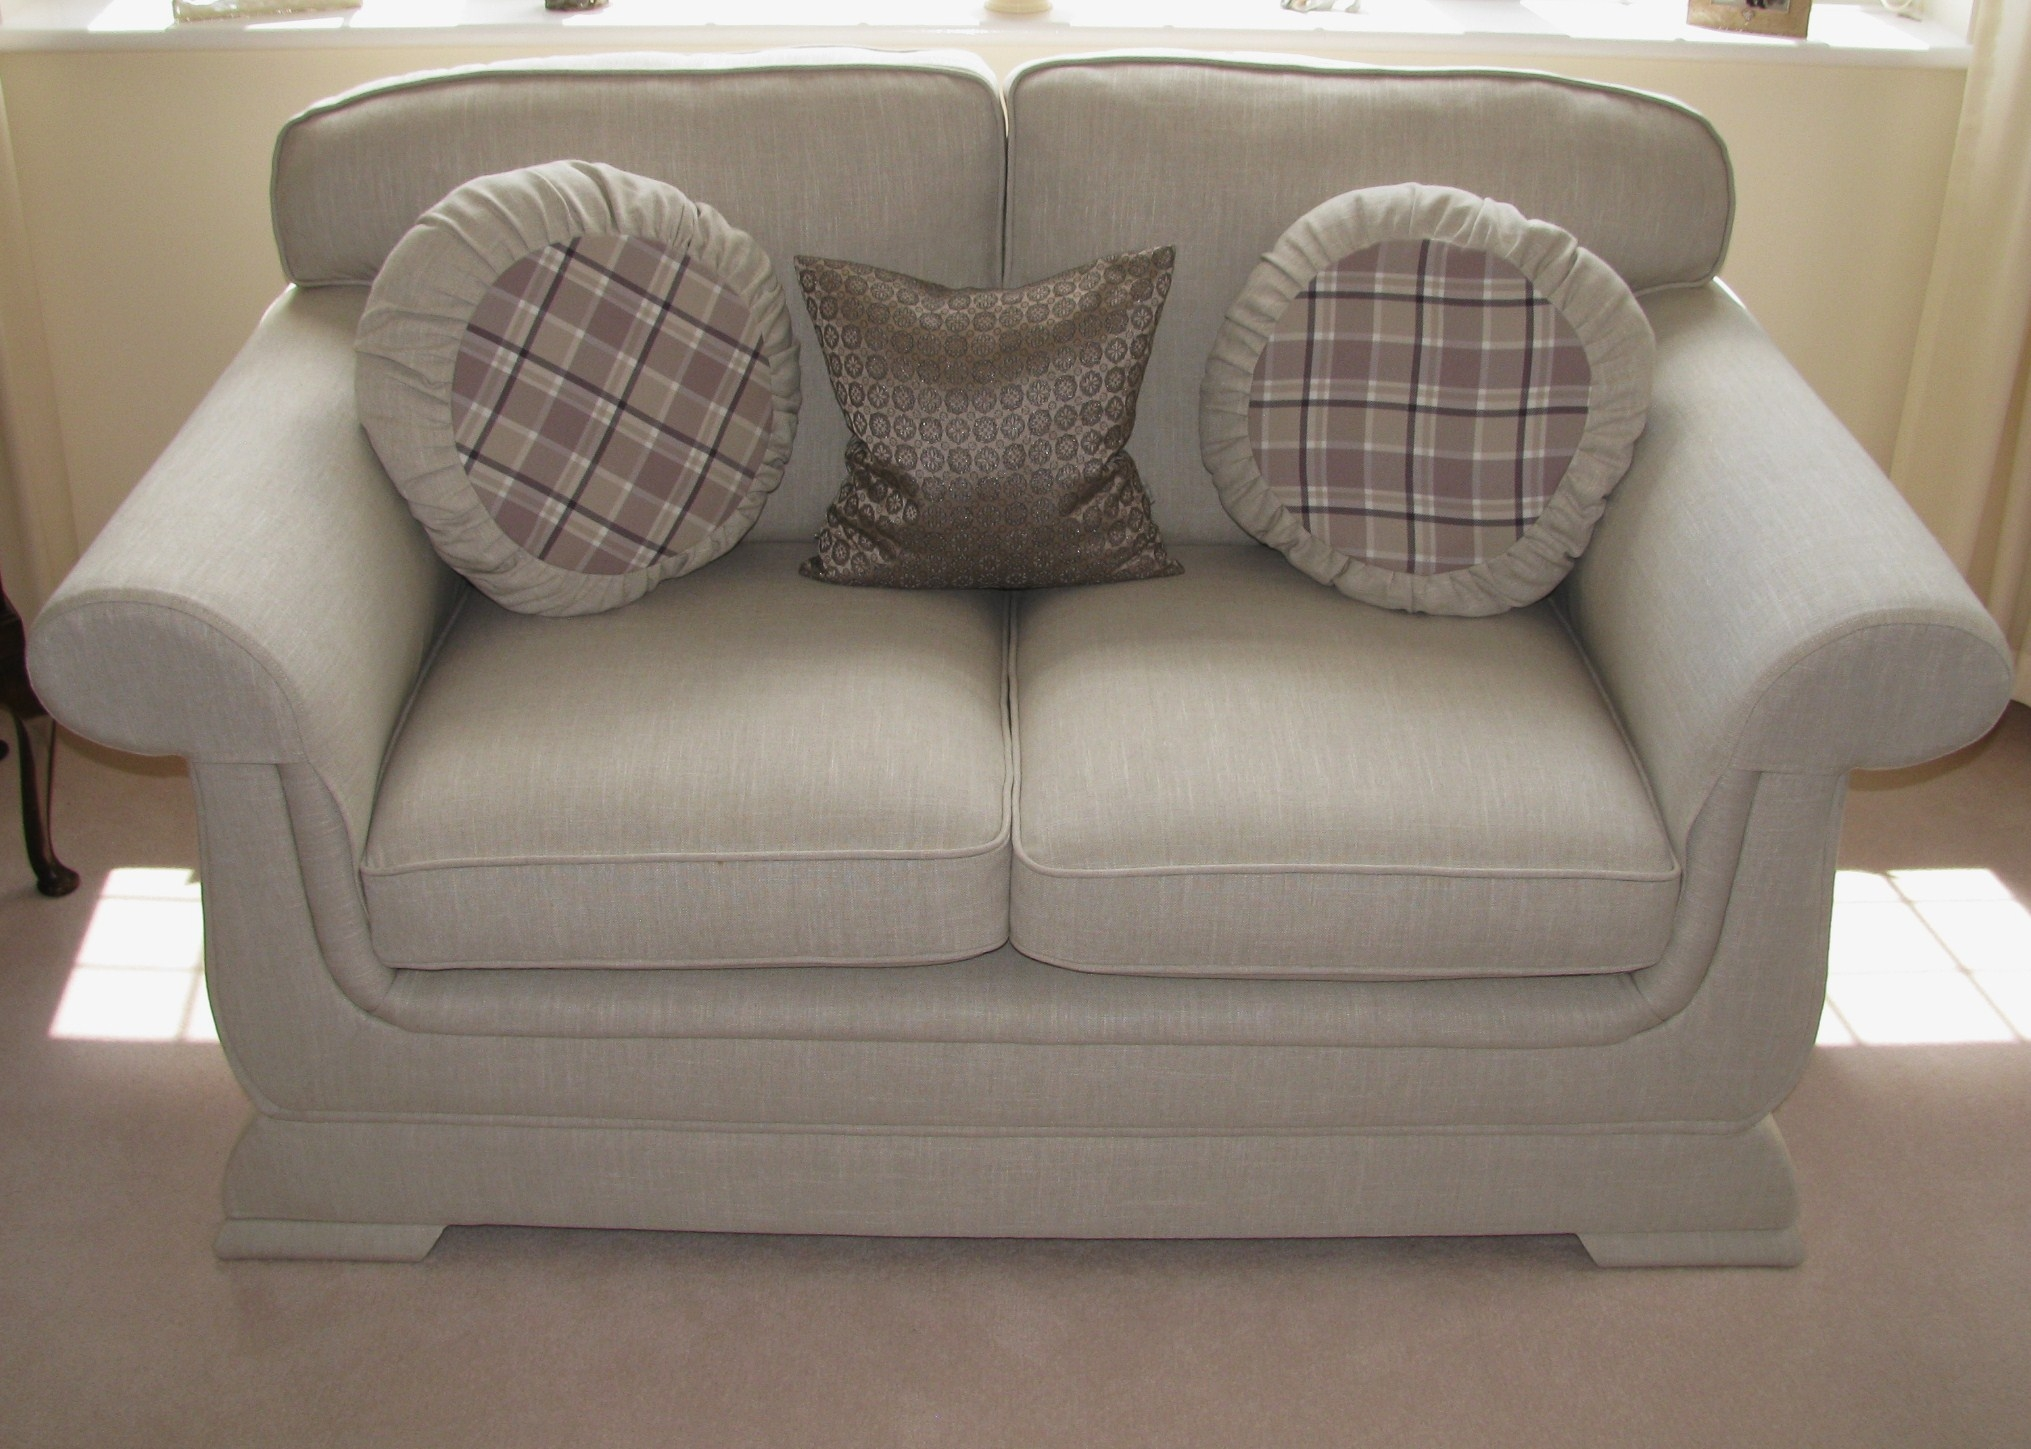 sectional sofas with removable slipcovers lugnvik sofa bed assembly 15 43 covers ideas